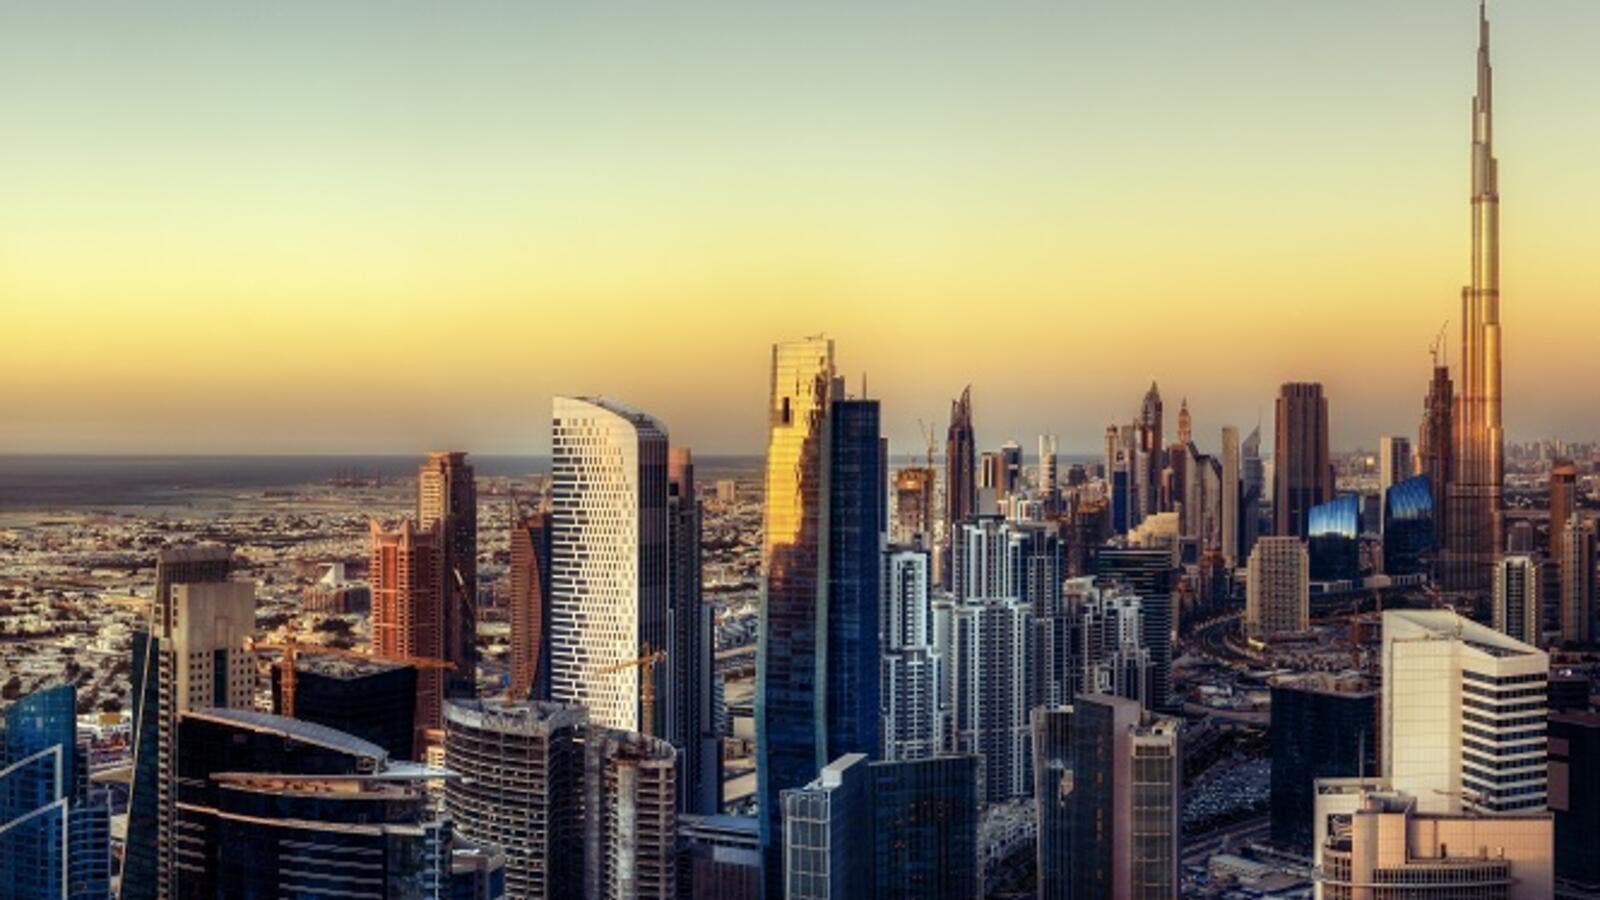 Dubai has been taking a pioneering role in self-driving cars, automated ports, testing of delivery robots and drones and social robots among others. (Shutterstock)